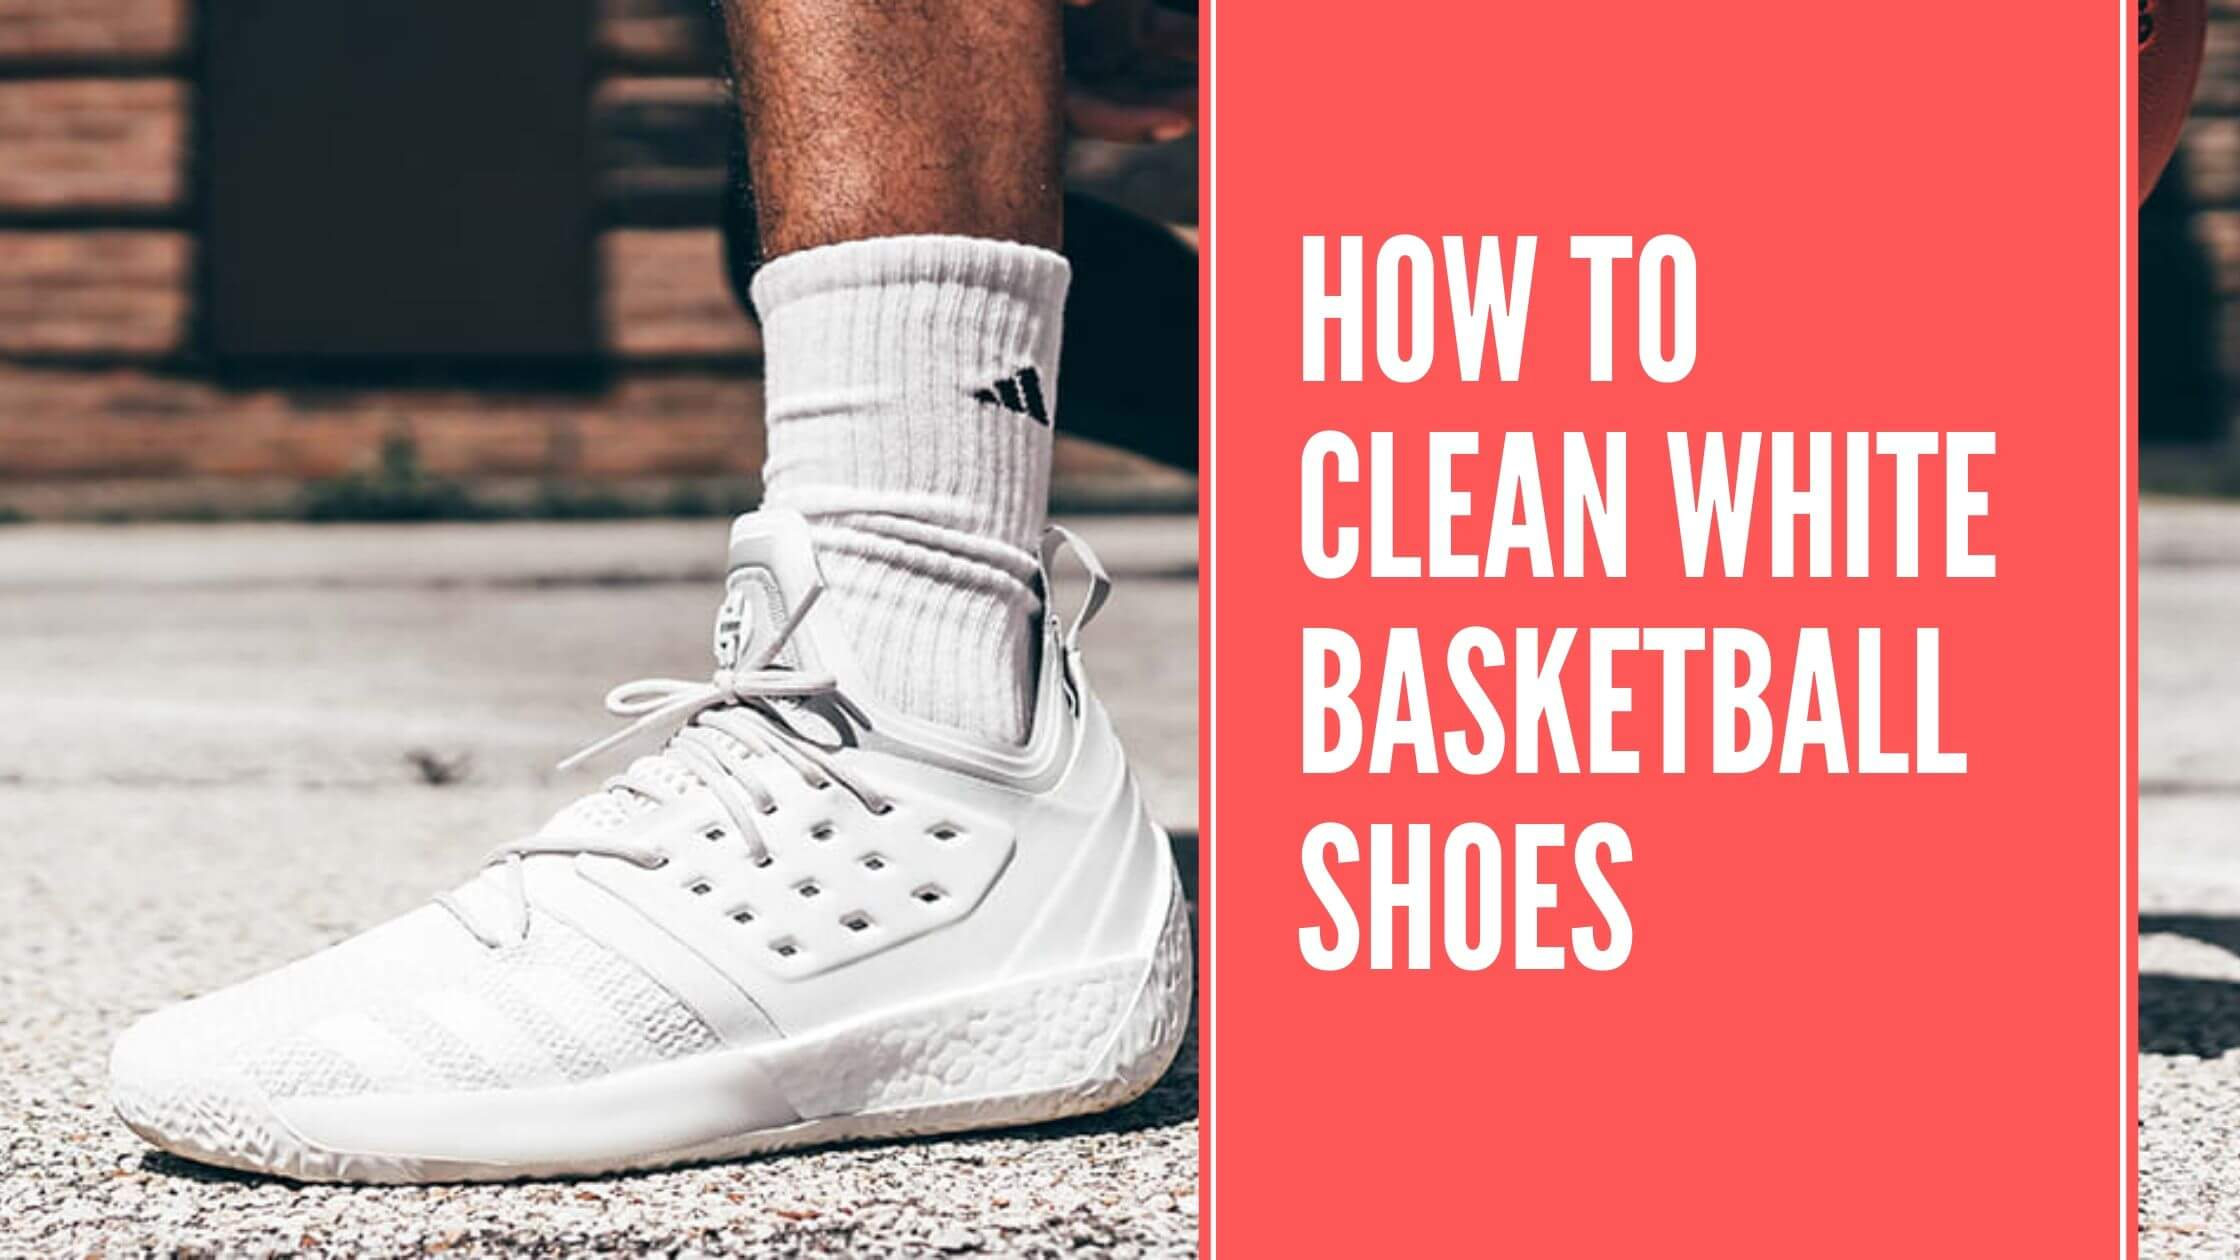 4 Washing Steps To Clean White Basketball Shoes